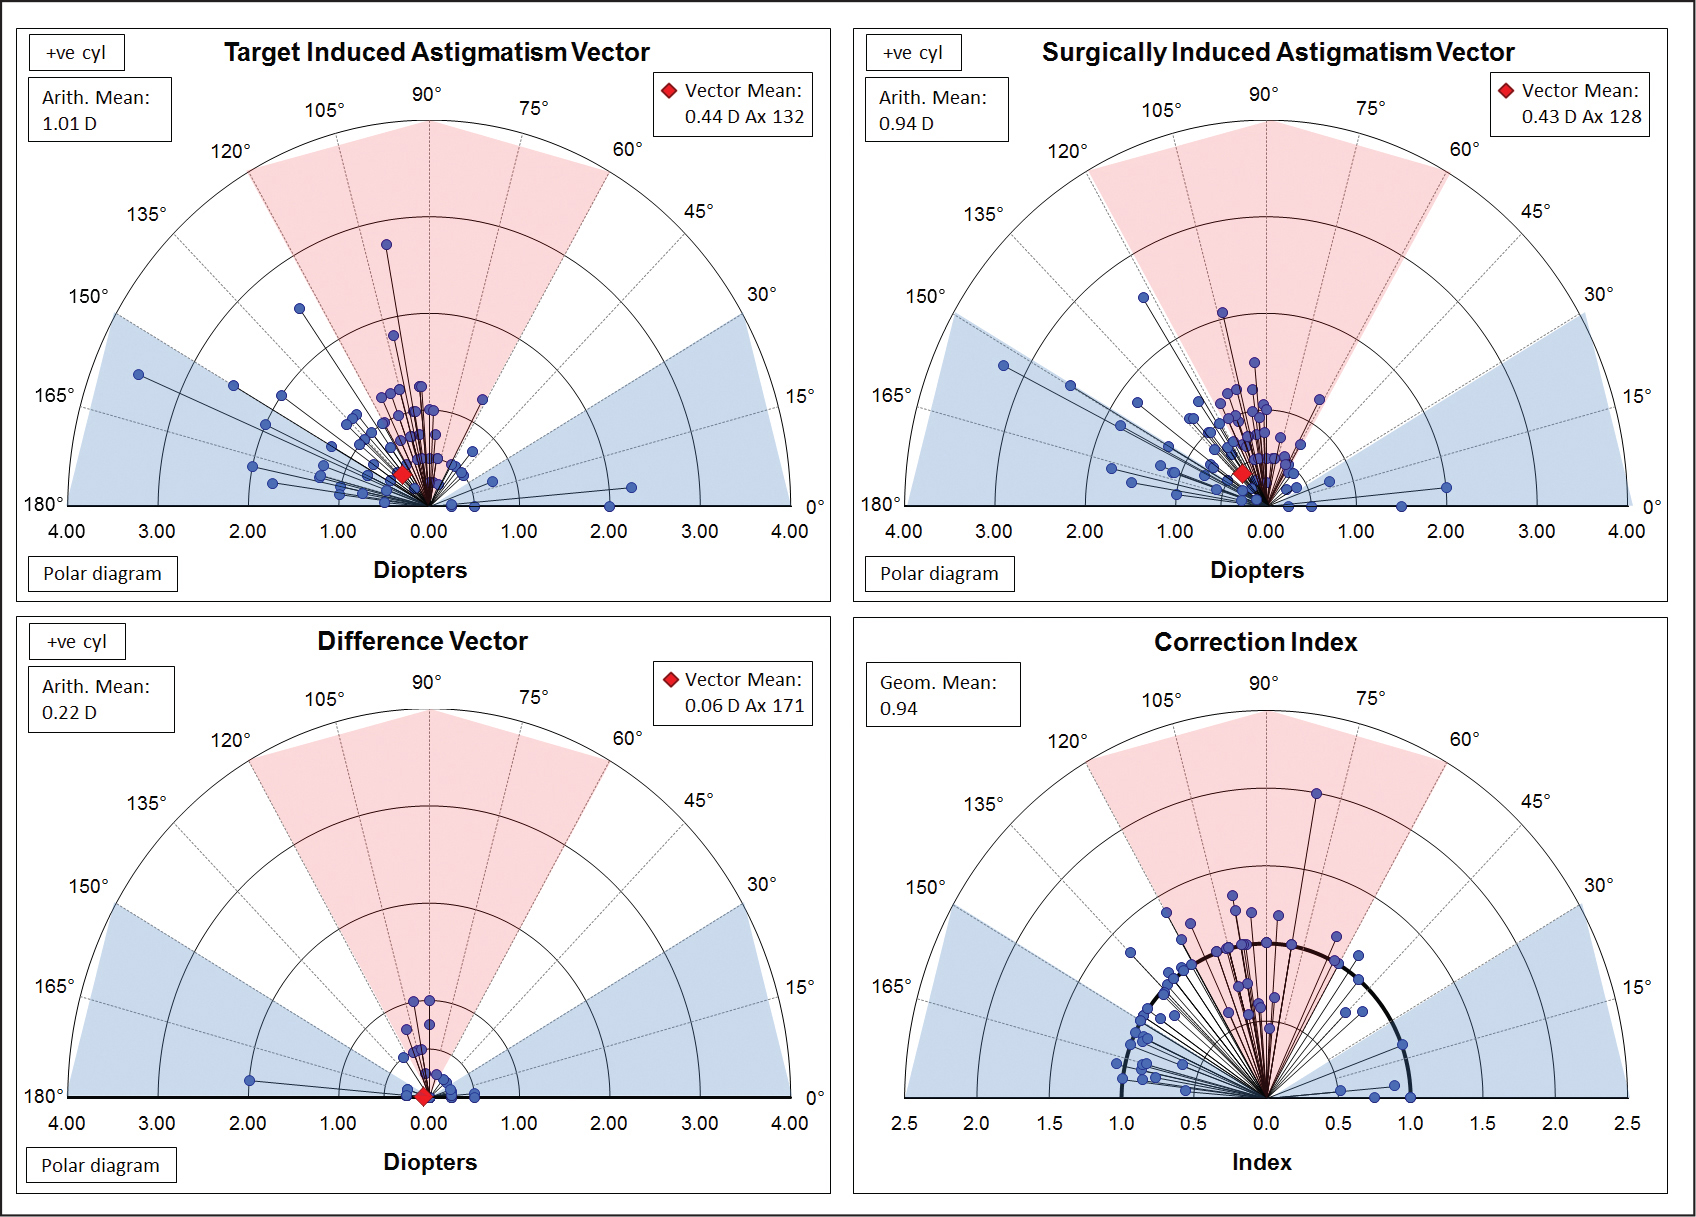 Vector analysis of refractive cylinder displayed as polar plots for target induced astigmatism vector (TIA), surgically induced astigmatism vector (SIA), difference vector (DV), and correction index (CI). D = diopters